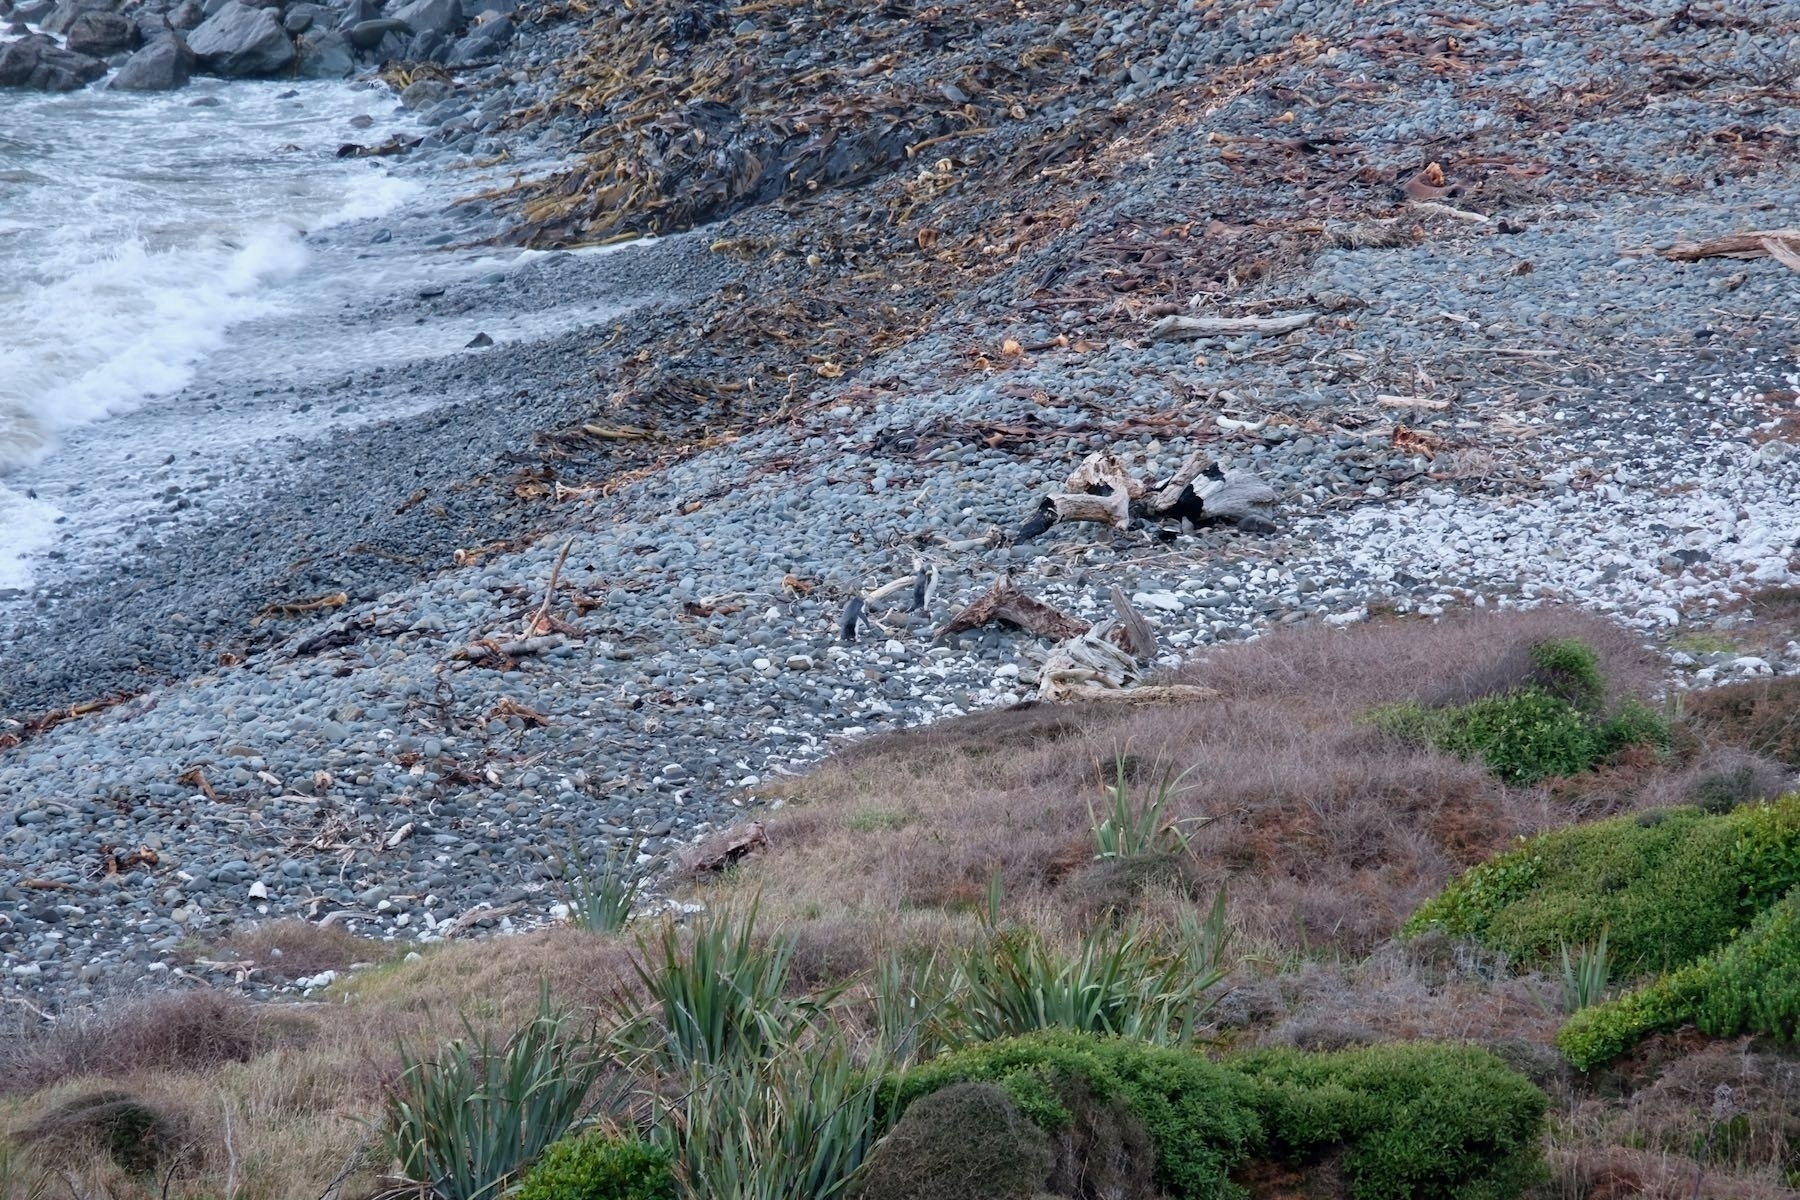 A distant pair of penguins on a shingle beach.